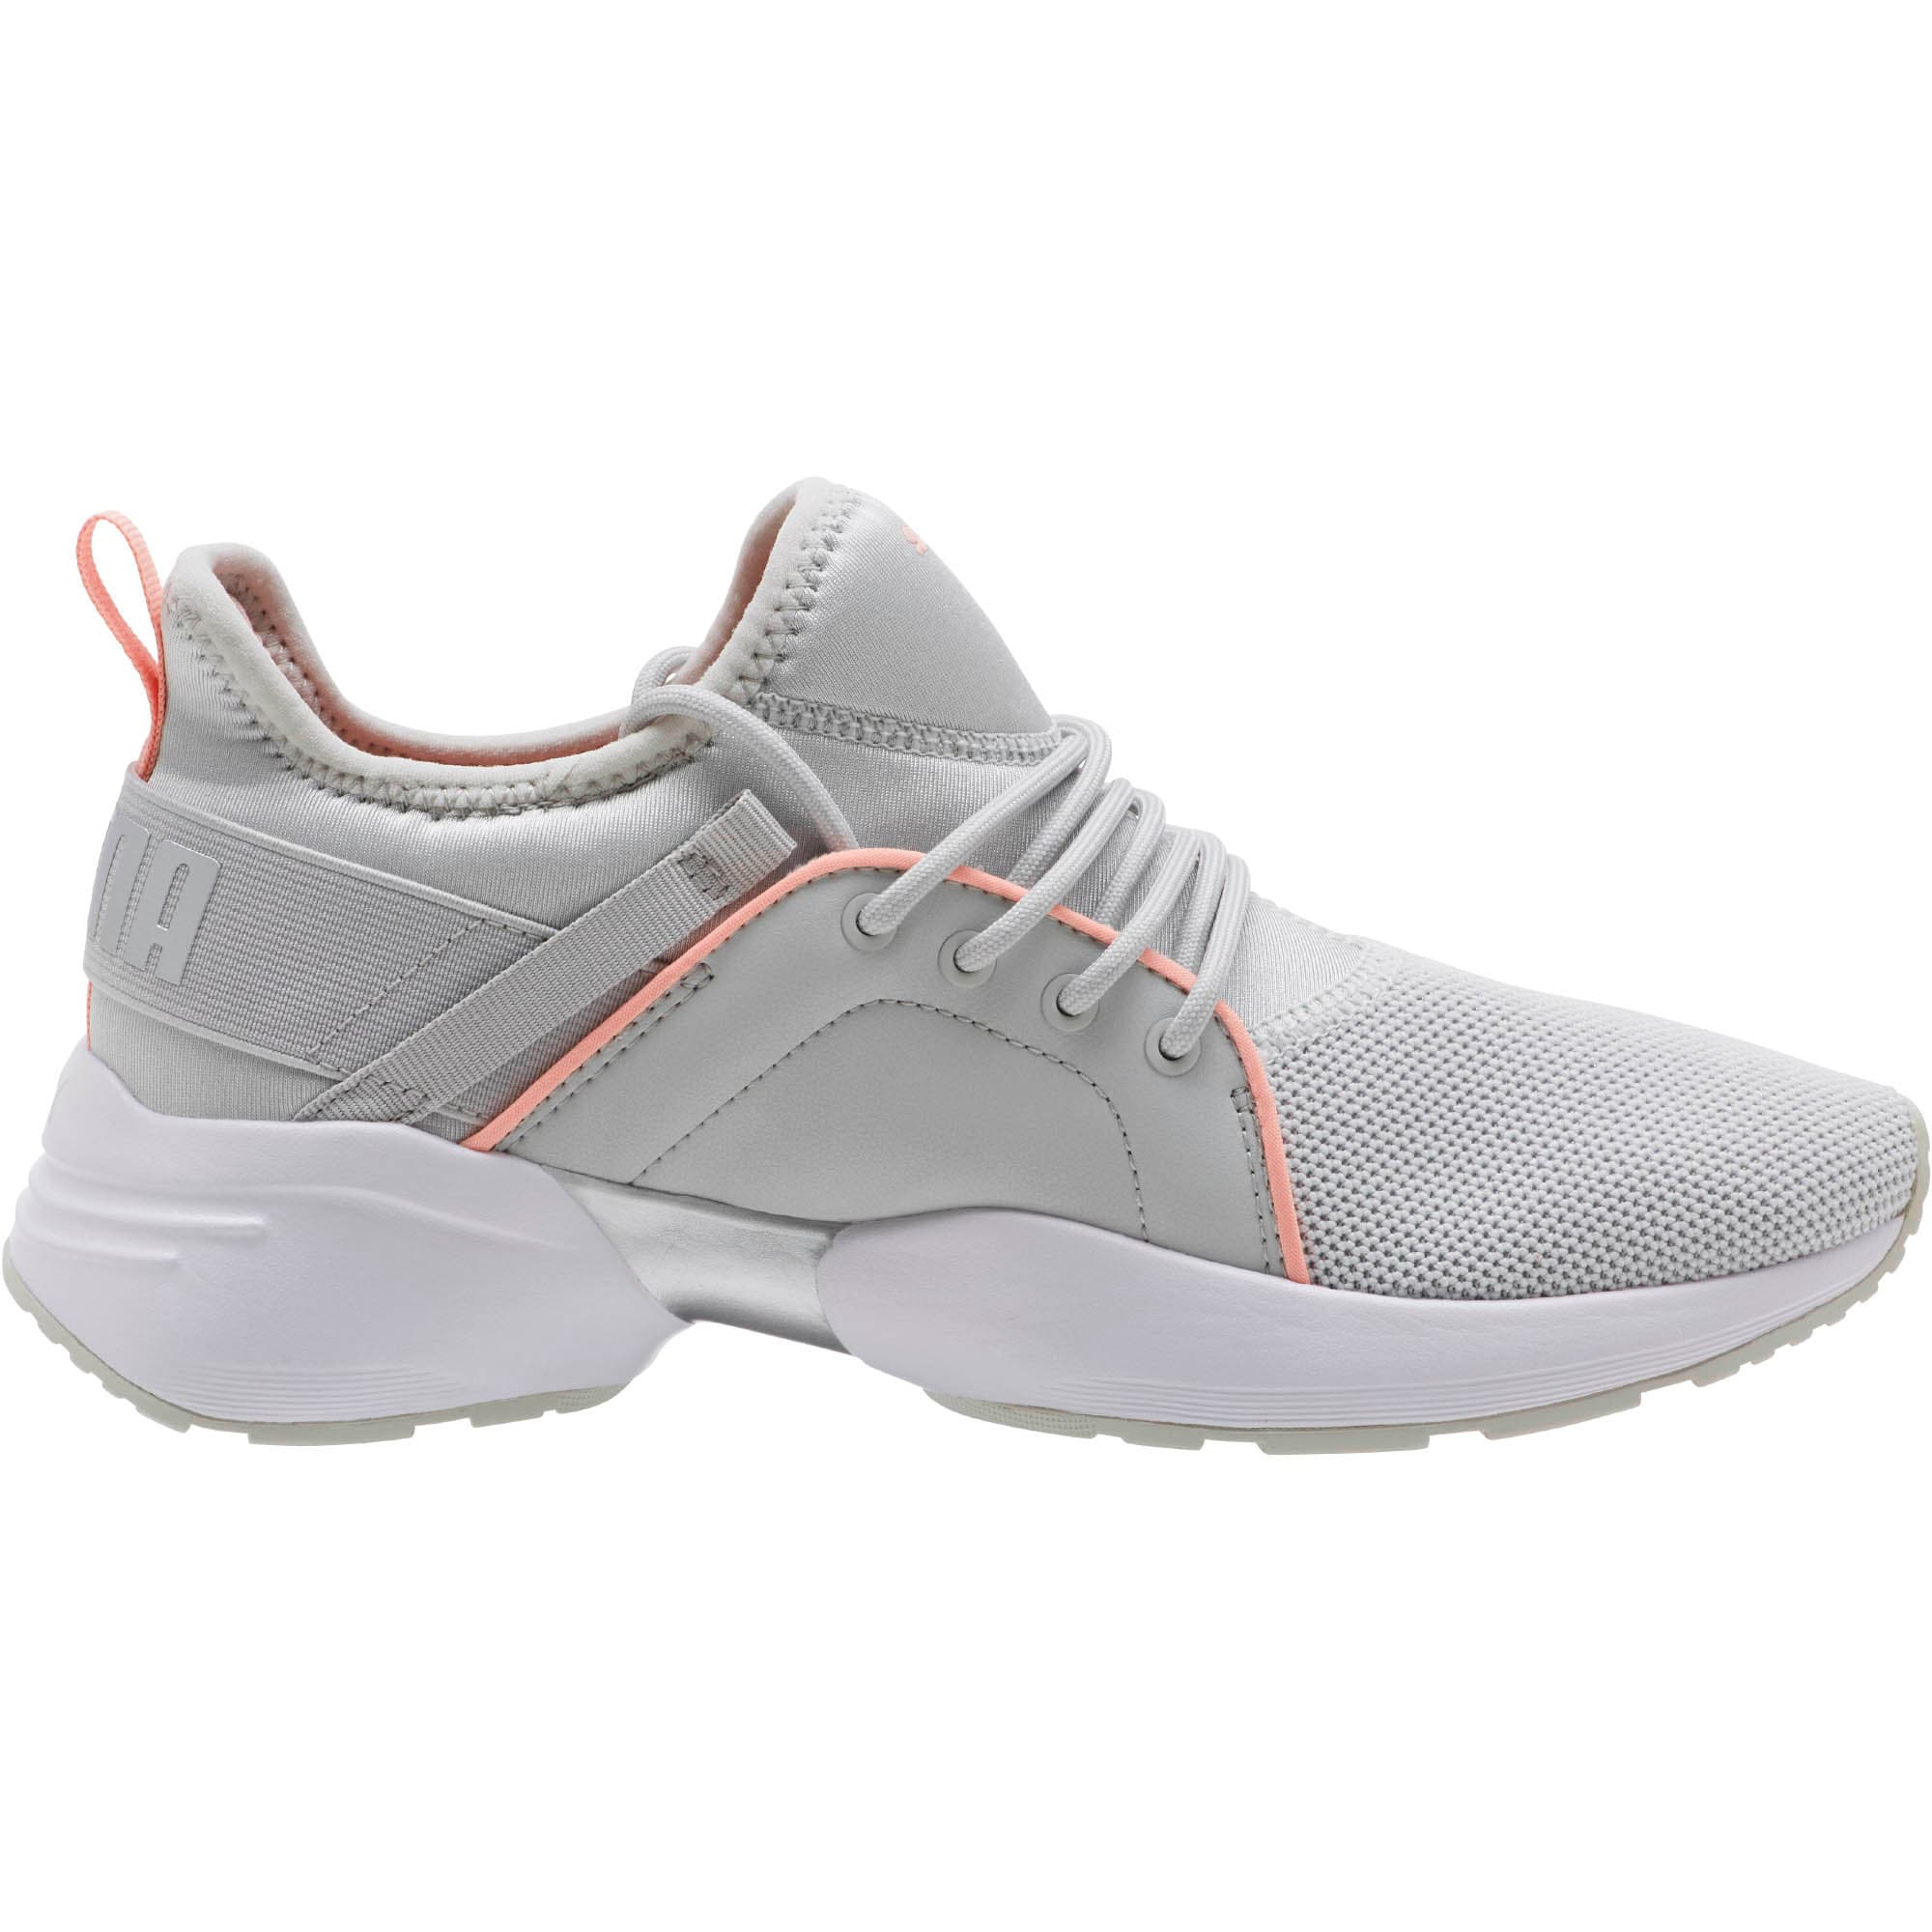 Thumbnail 3 of Sirena Women's Training Shoes, Glacier Gray-Peach Bud, medium